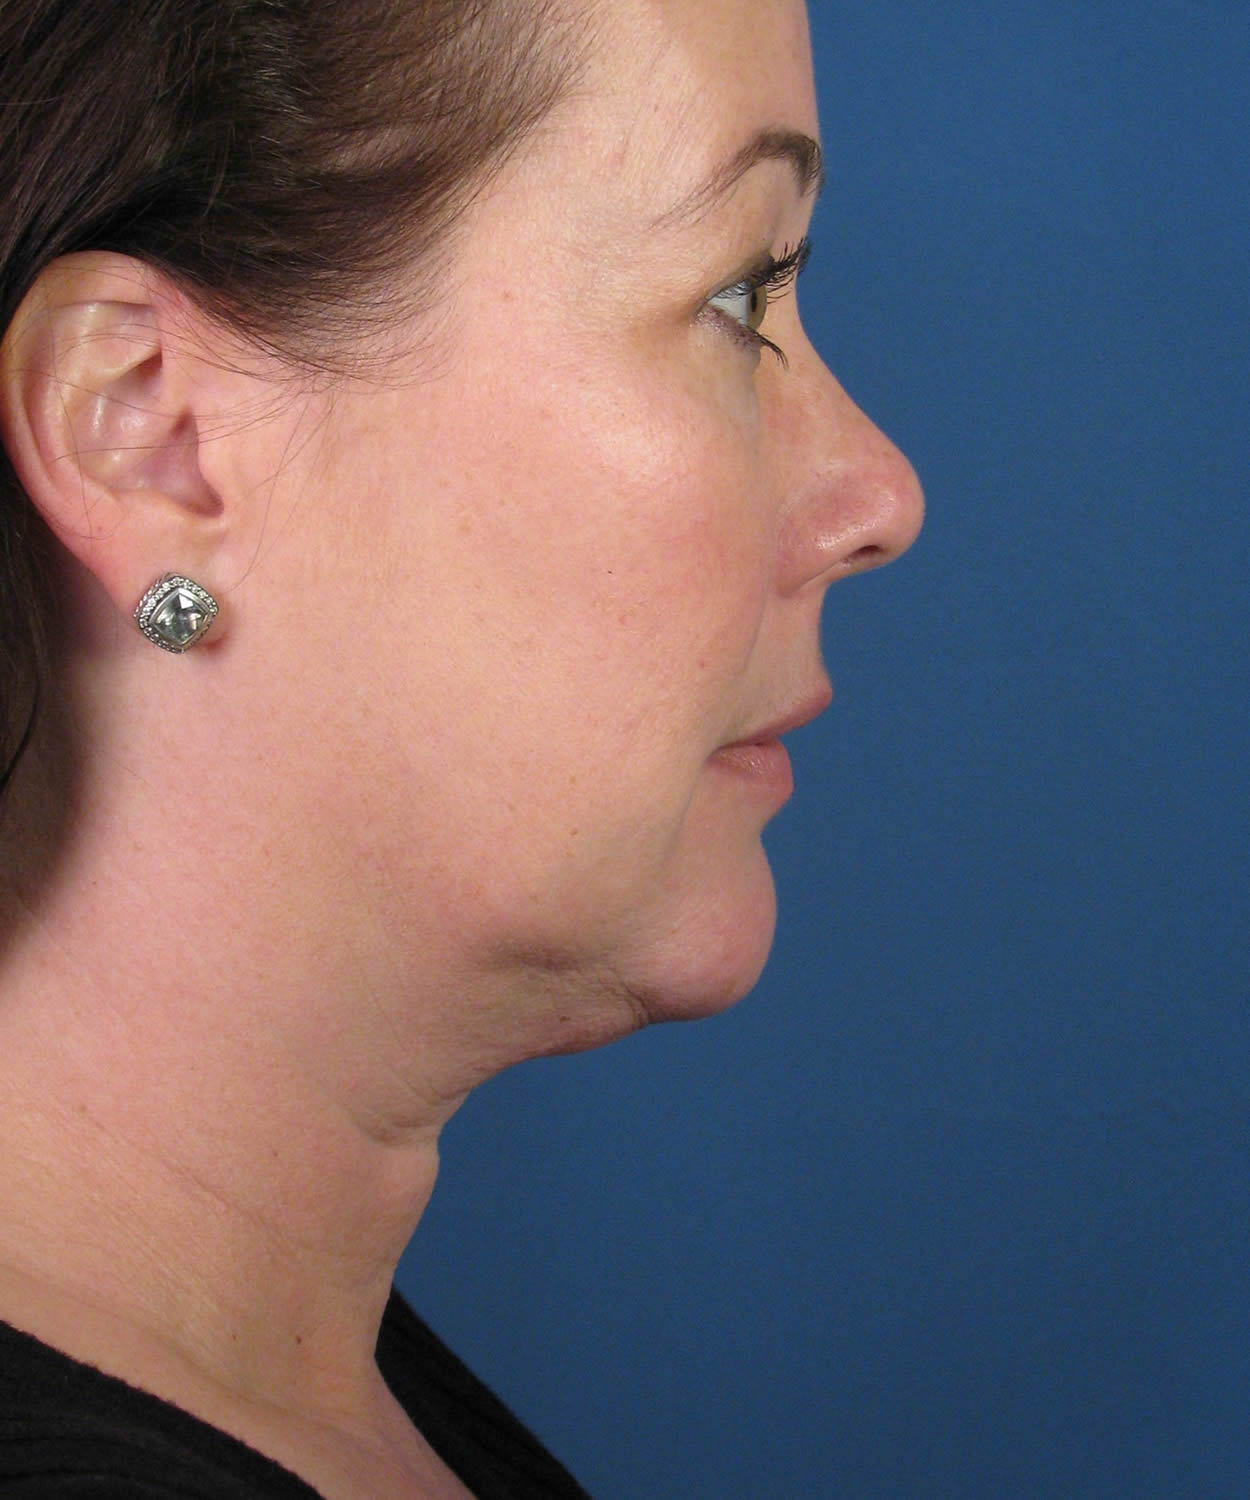 Before and After Neck Liposuction & Platysmaplasty